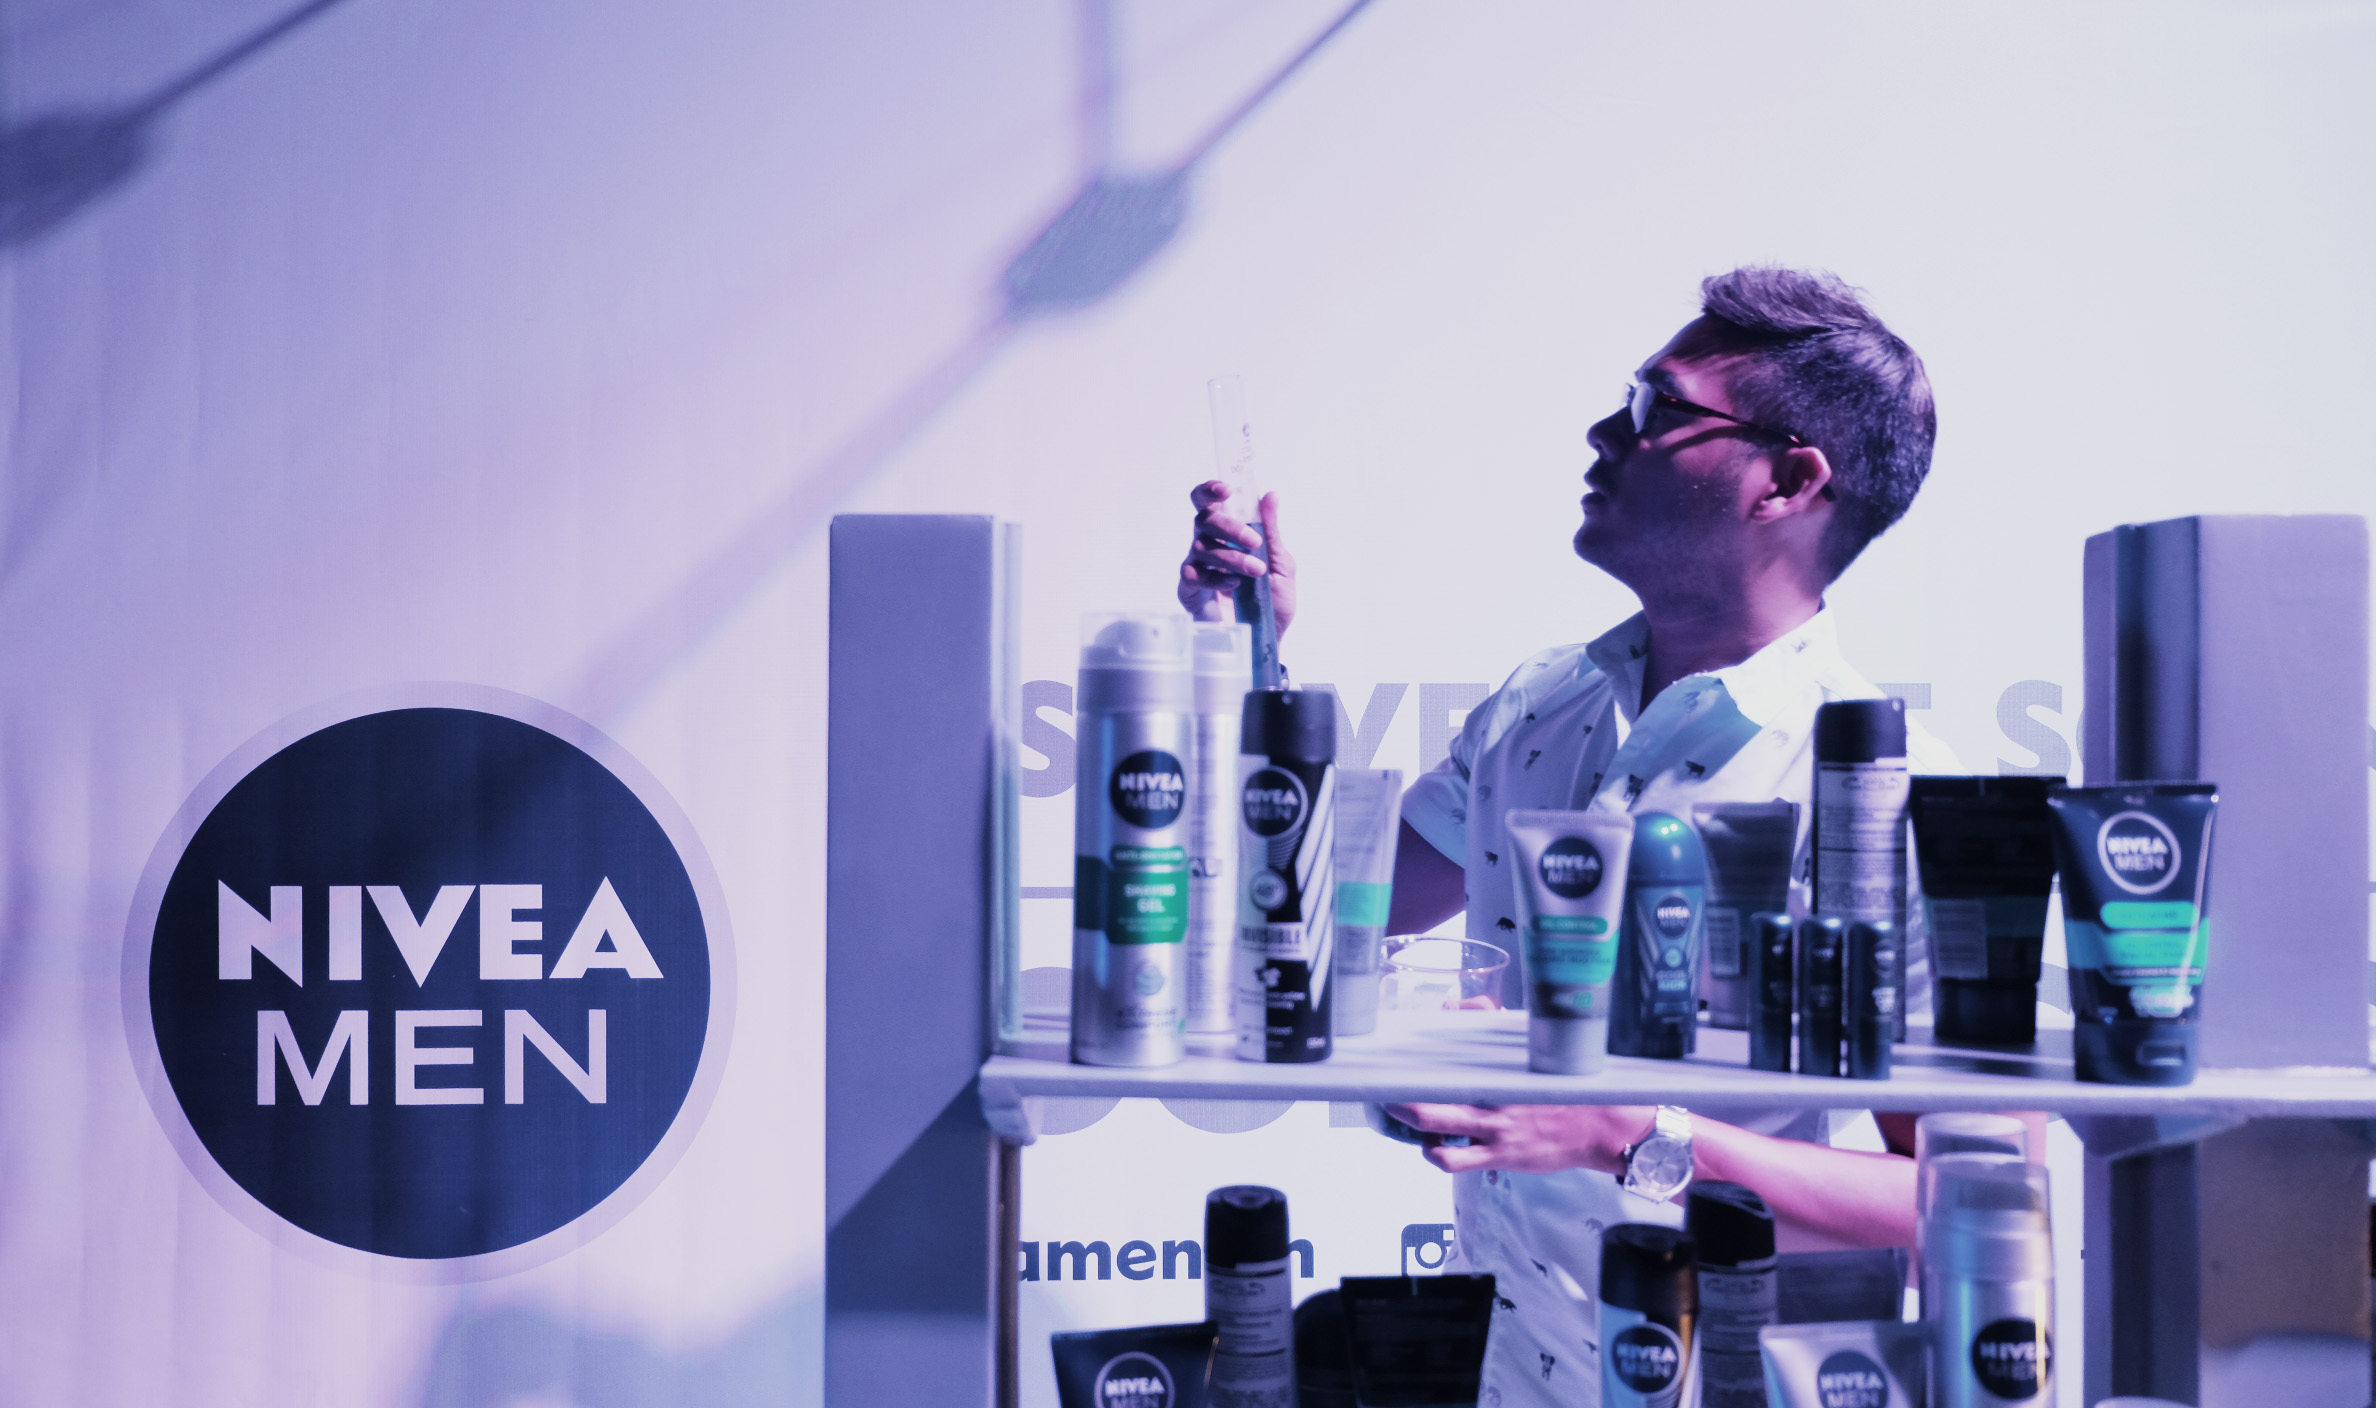 The BHAGs & WTM in Nivea Men's Science of Looking Good | Nognog In The City